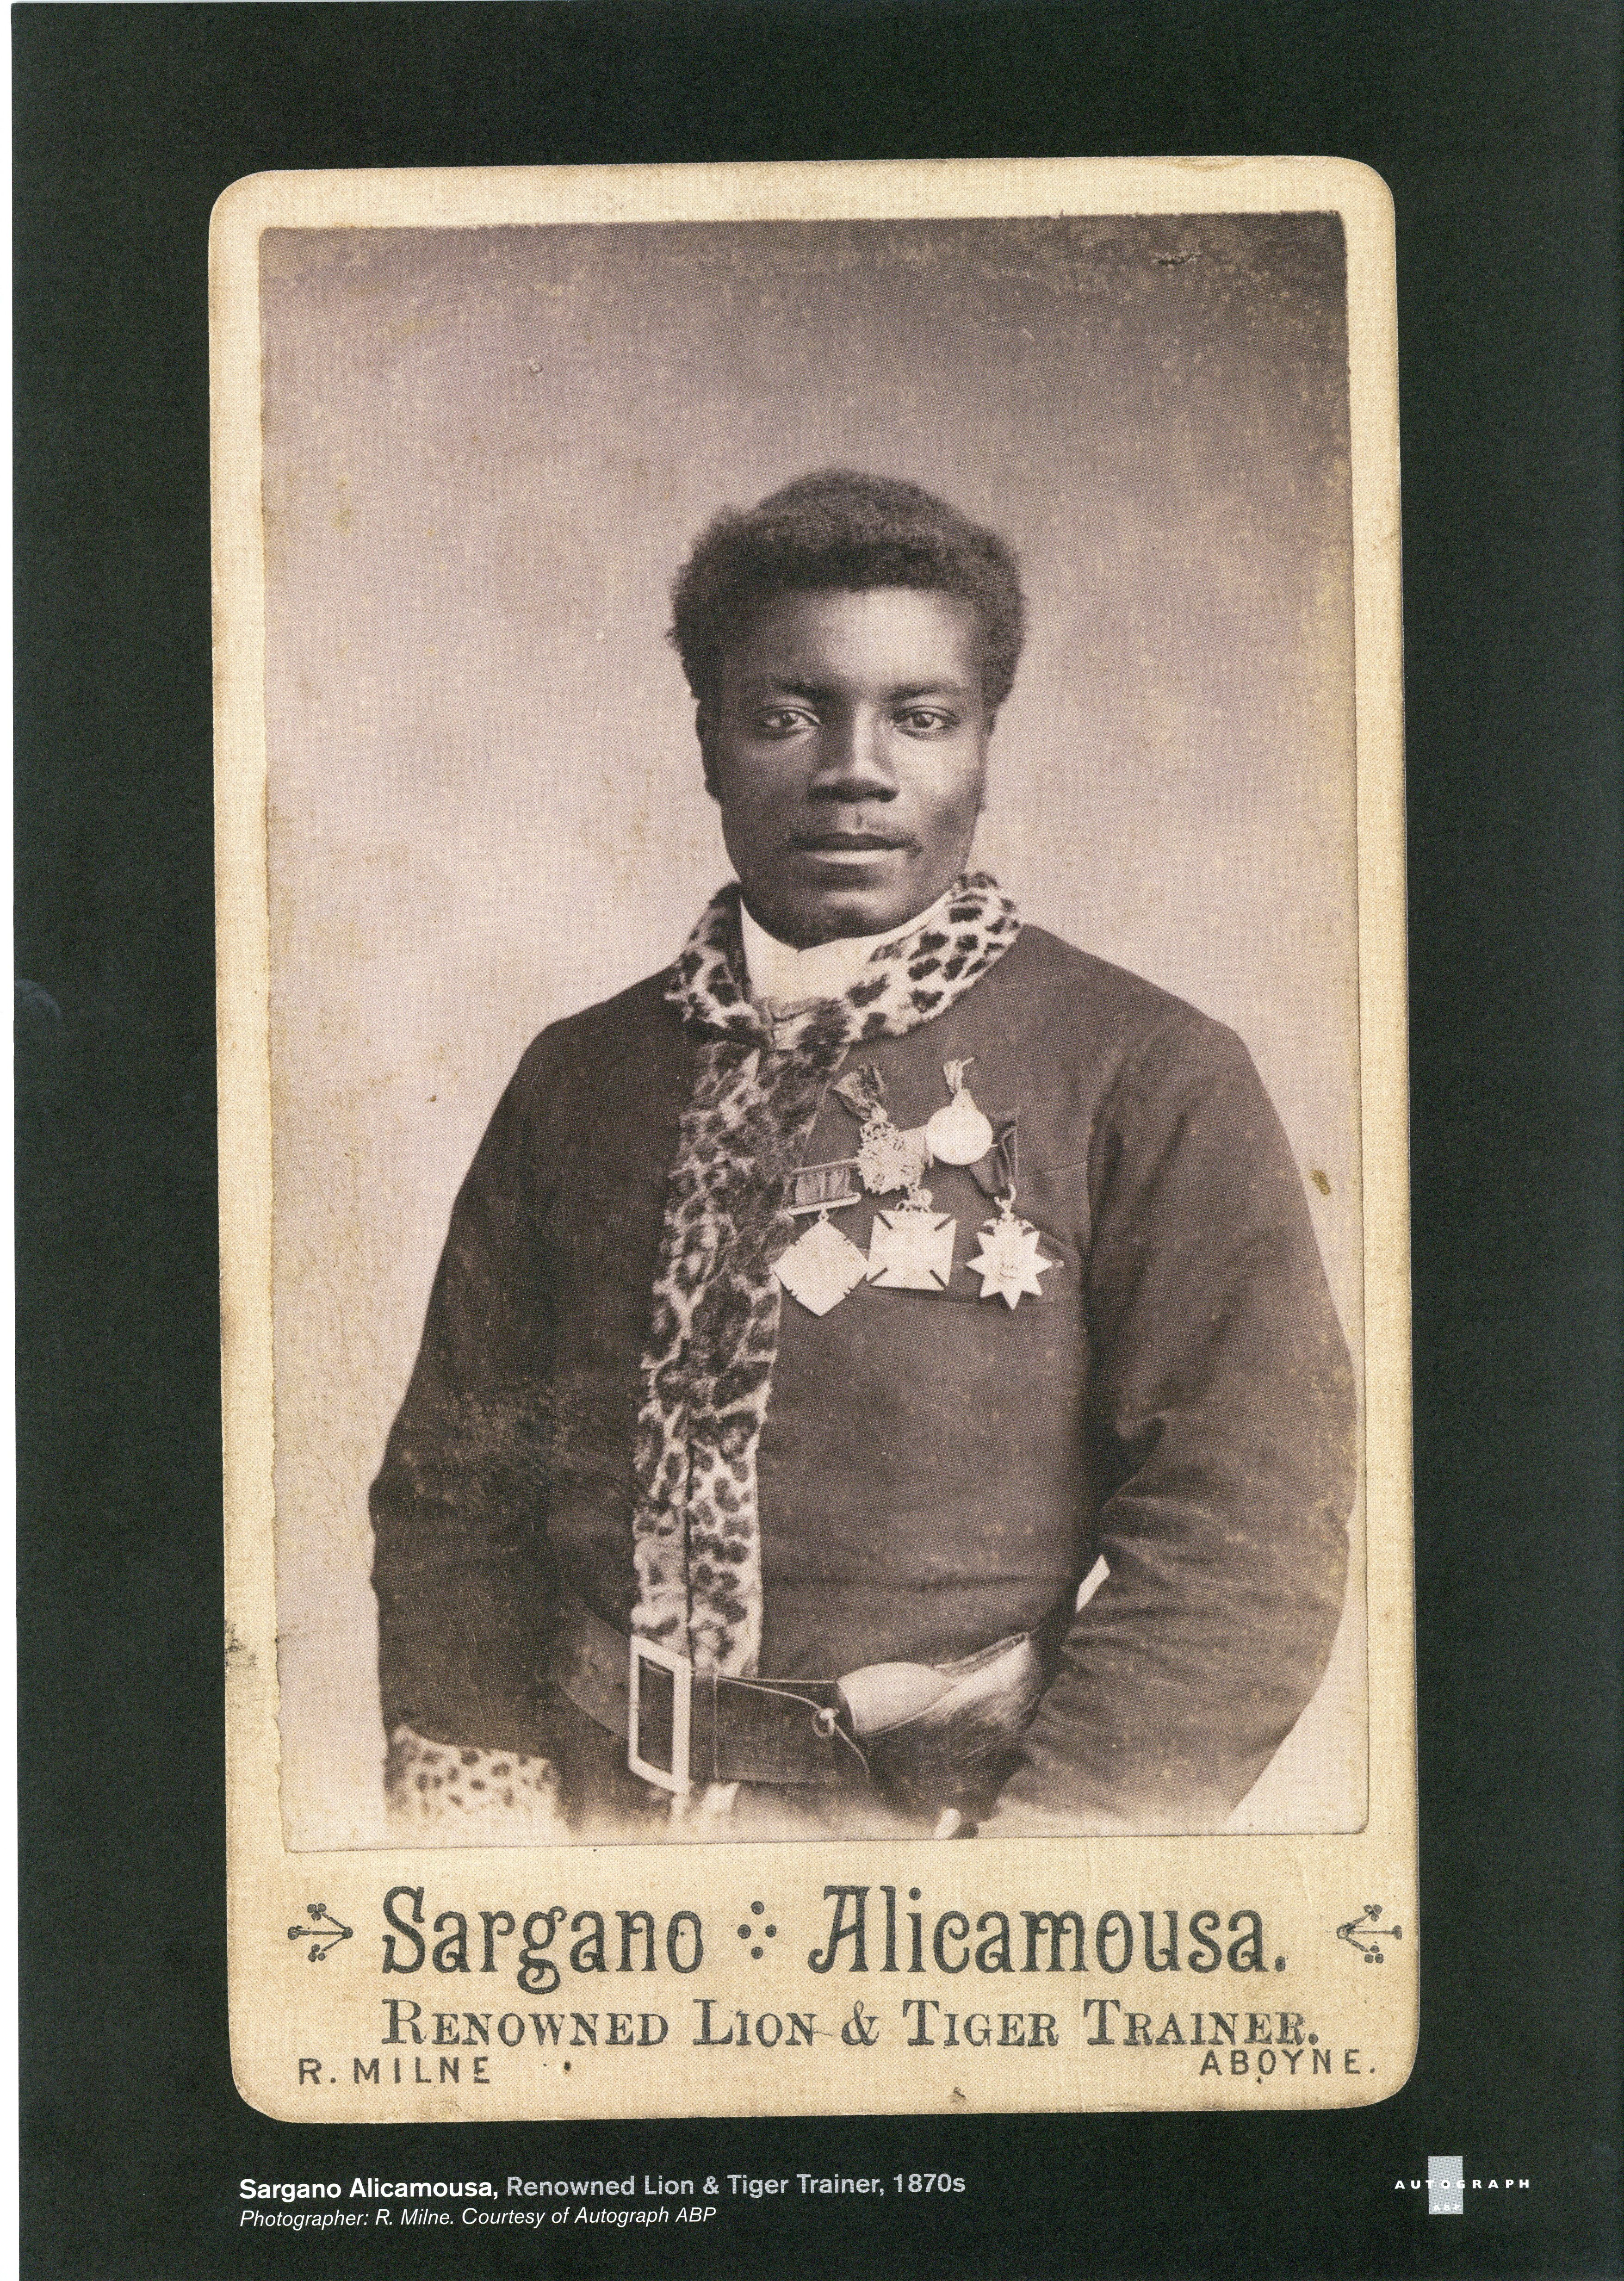 Sepia tinted photograph of a Black man wearing a jacket with medals and a leopard-print scarf. Text below reading Sargano Alicamousa, Renowned Lion and Tiger Trainer 1870s. Photographer R Milne Courtesy of Autograph ABP